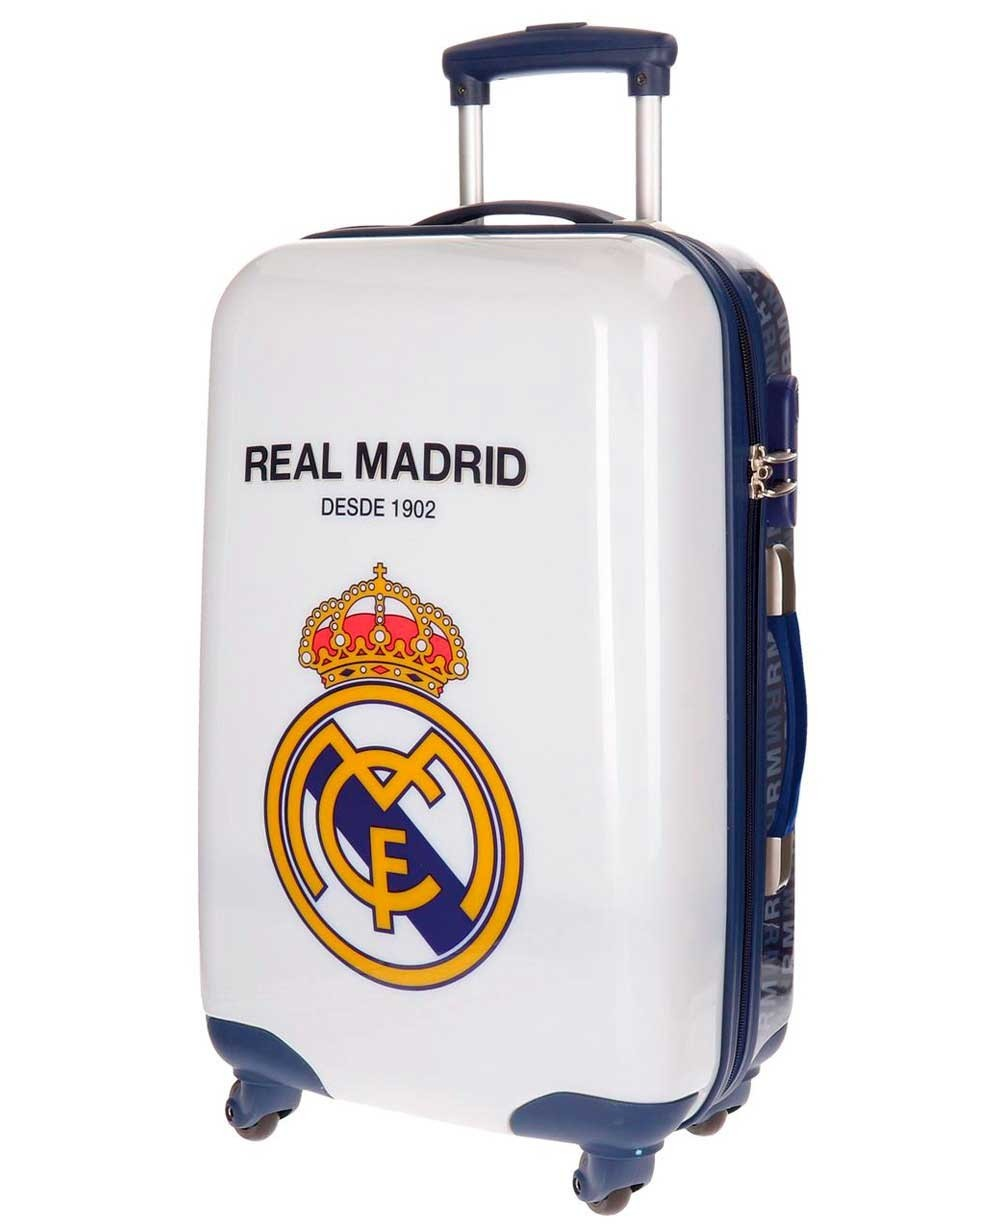 Real Madrid RM 1902 Maleta mediana Blanca 0